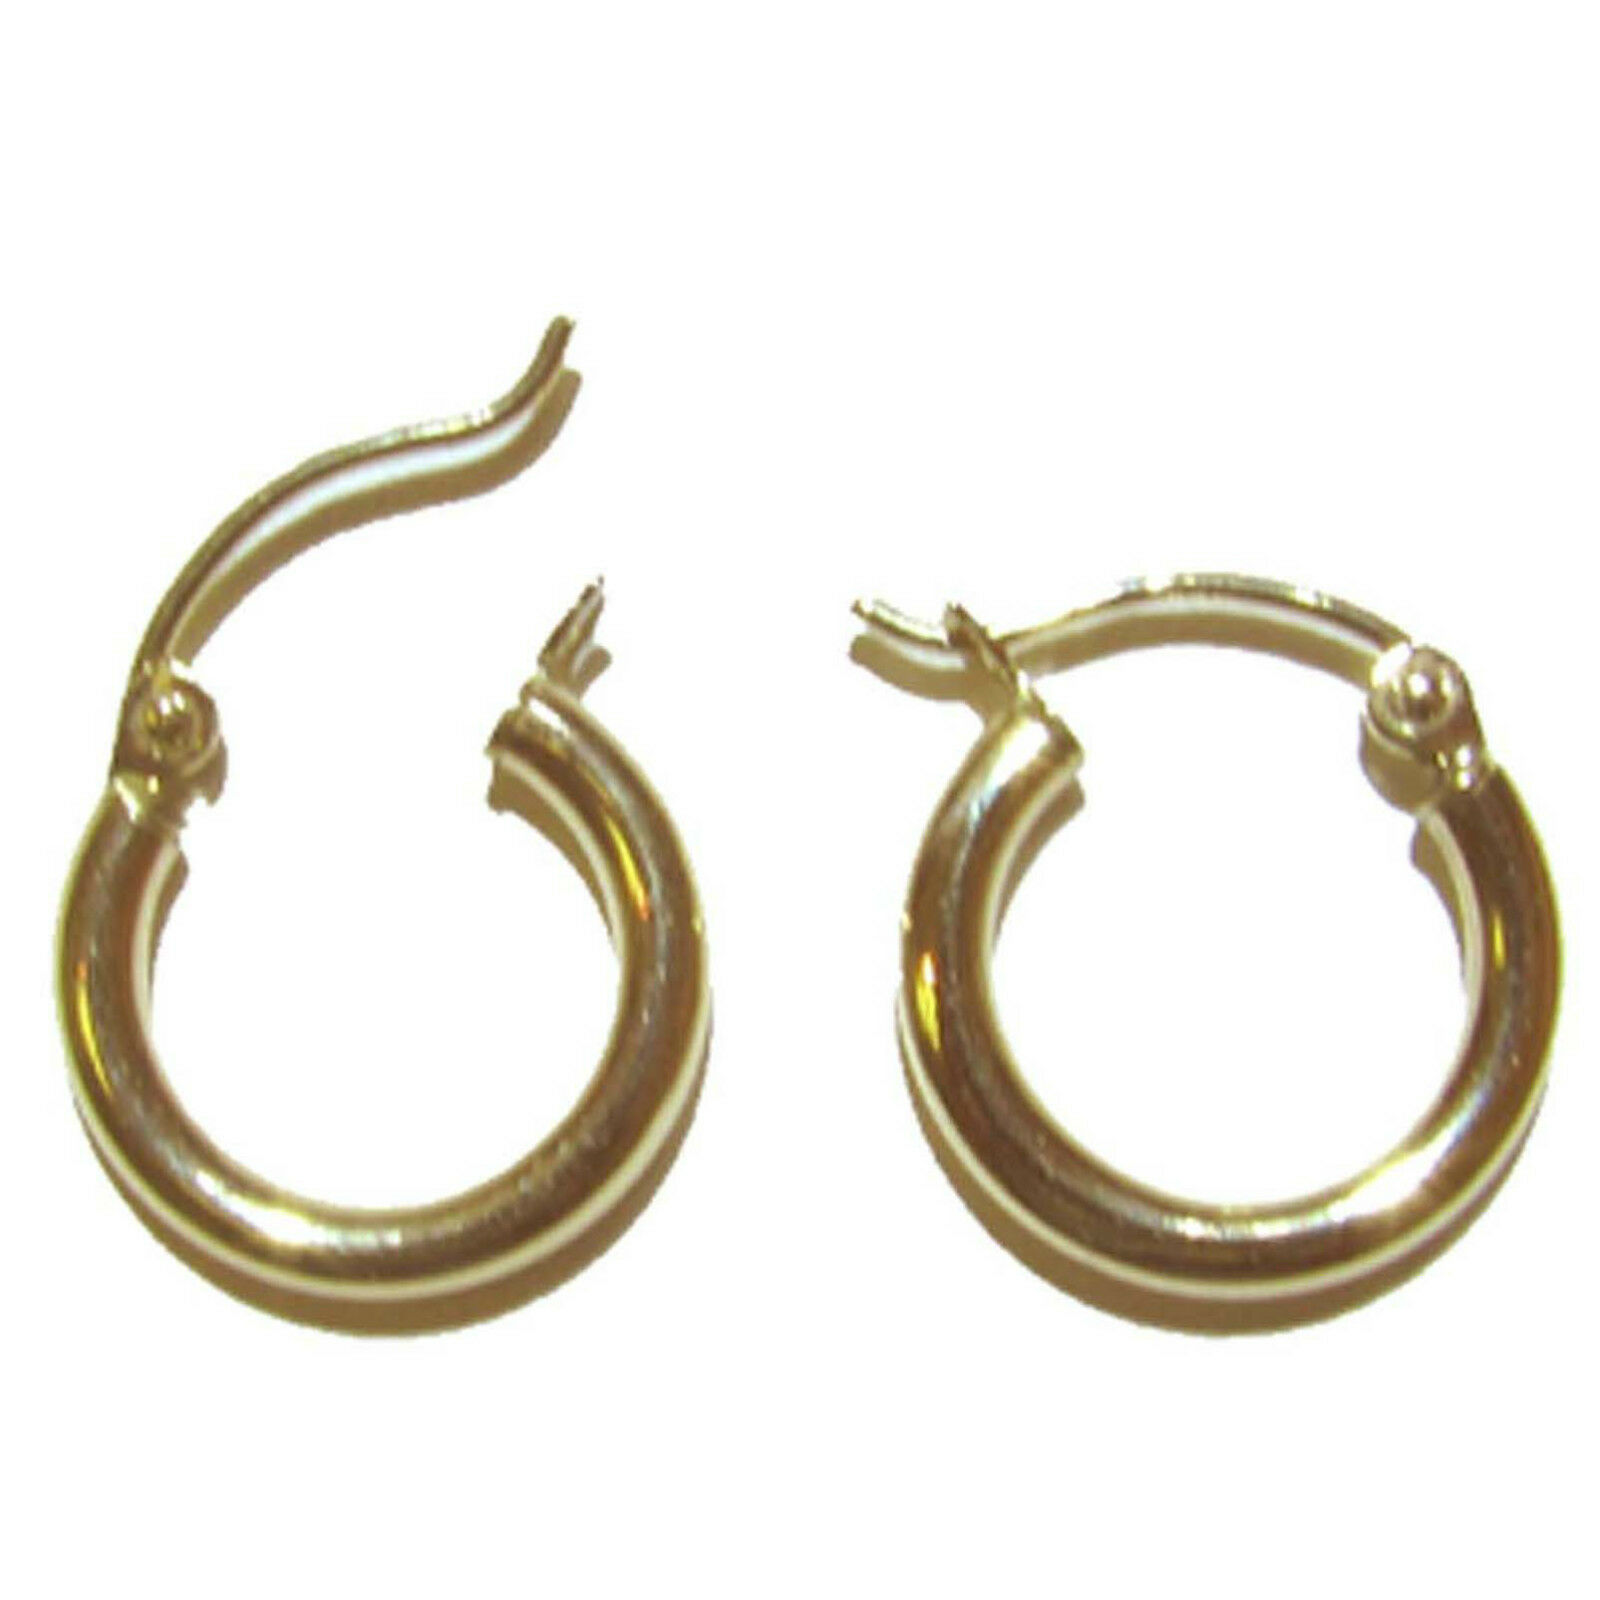 14K Solid Yellow gold Hoop Earring. 3 mm x 16 mm New  E7316-40